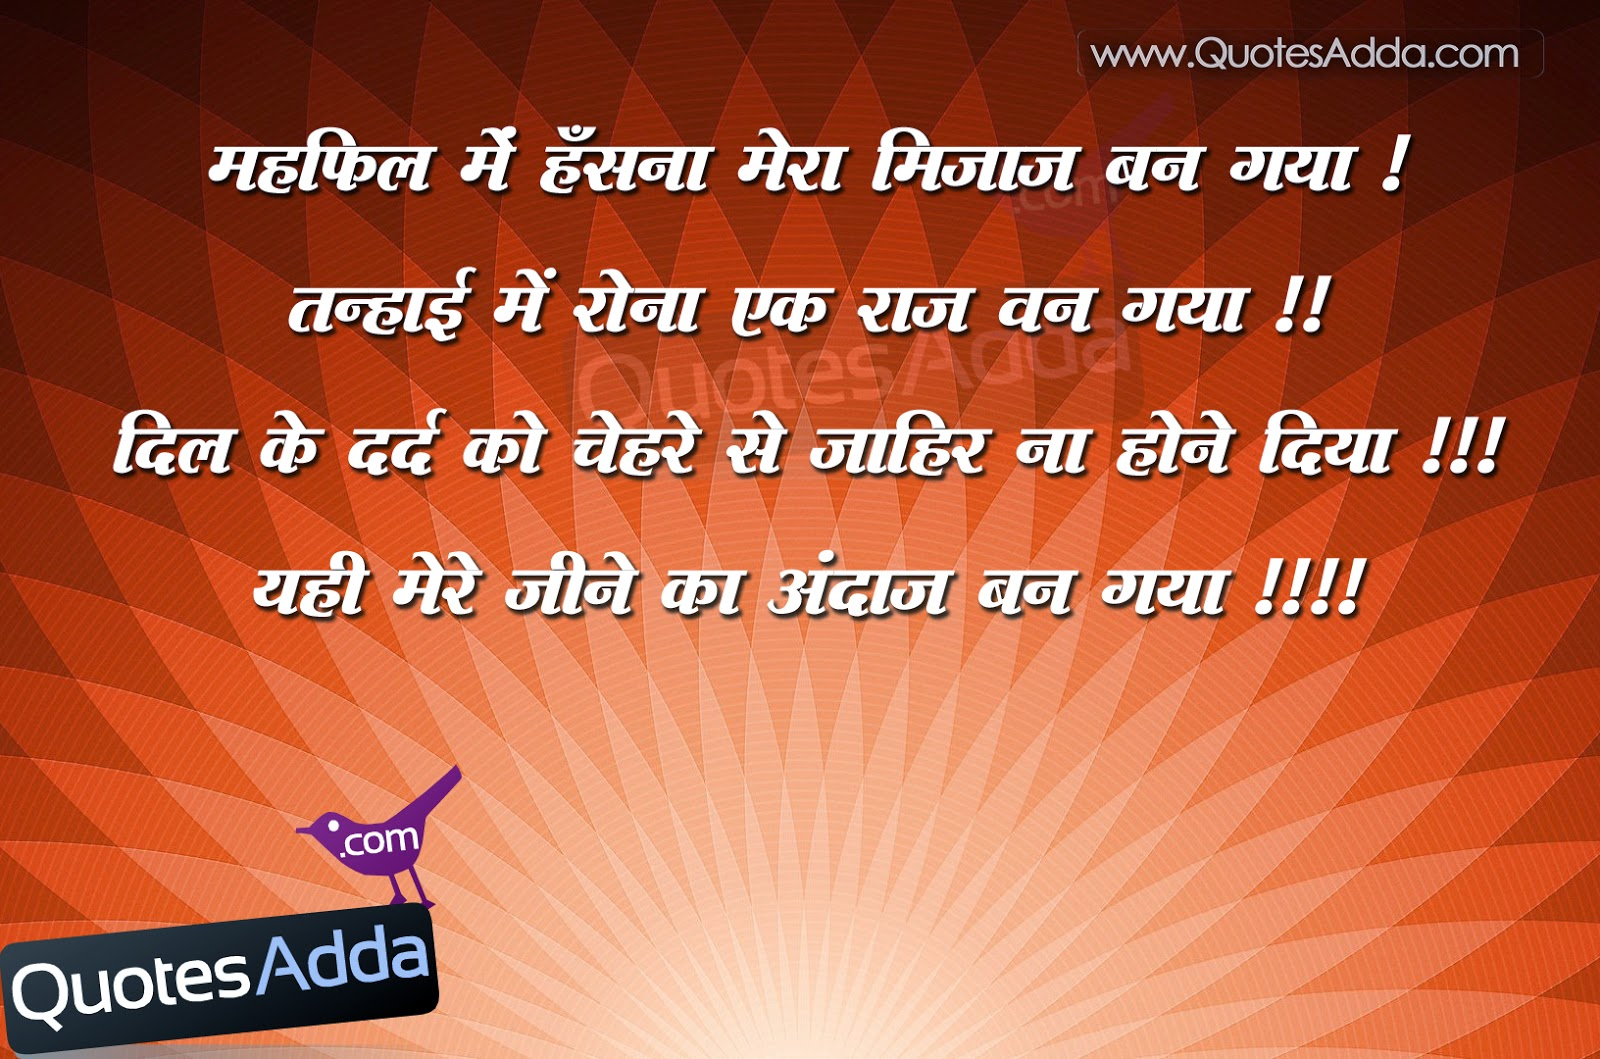 In English Hindi Quotes About Life Quotesgram: Hindi Quotes About Love. QuotesGram